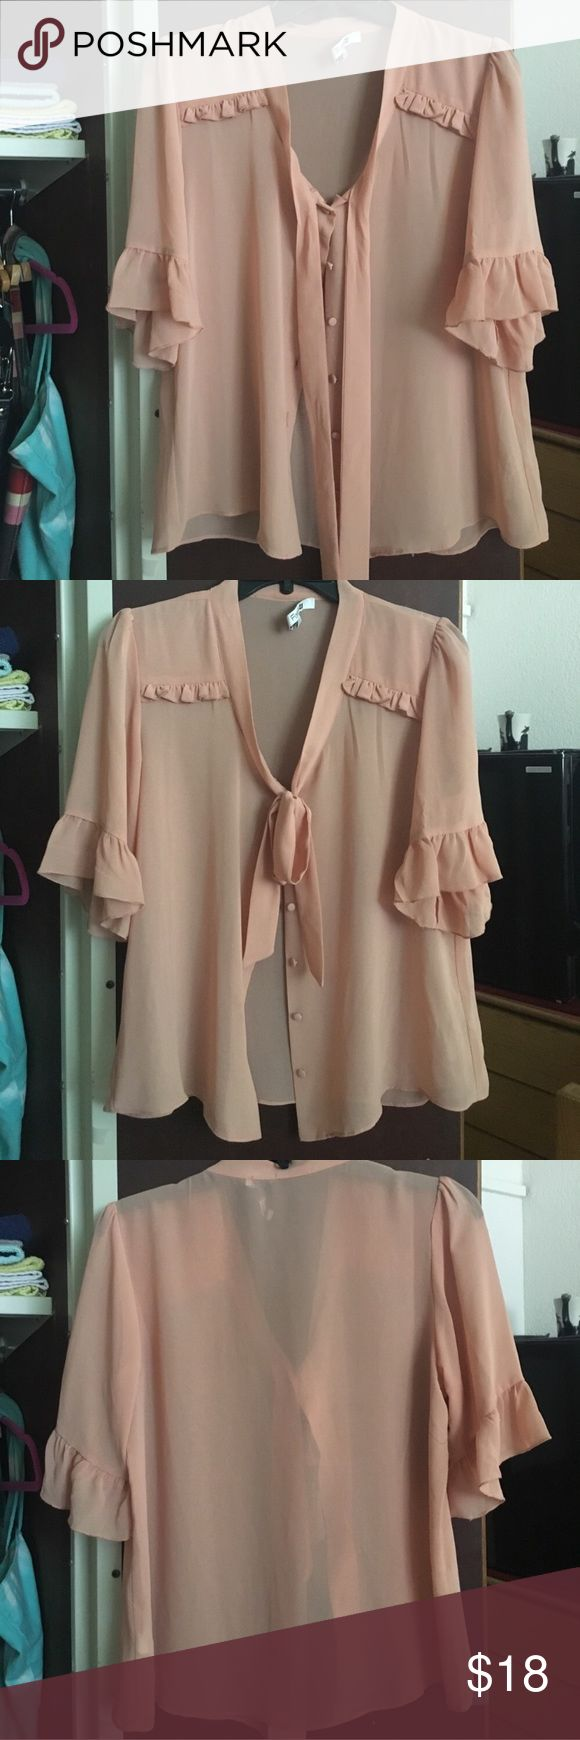 Forever 21 top Peachy top from F21 | Sheer fabric, features buttons and cute frilly details | SZ L, but I wear a S-M and it fits oversized | great condition *Please note the inside label in the first photo | labeled ASOS for views ASOS Tops Blouses